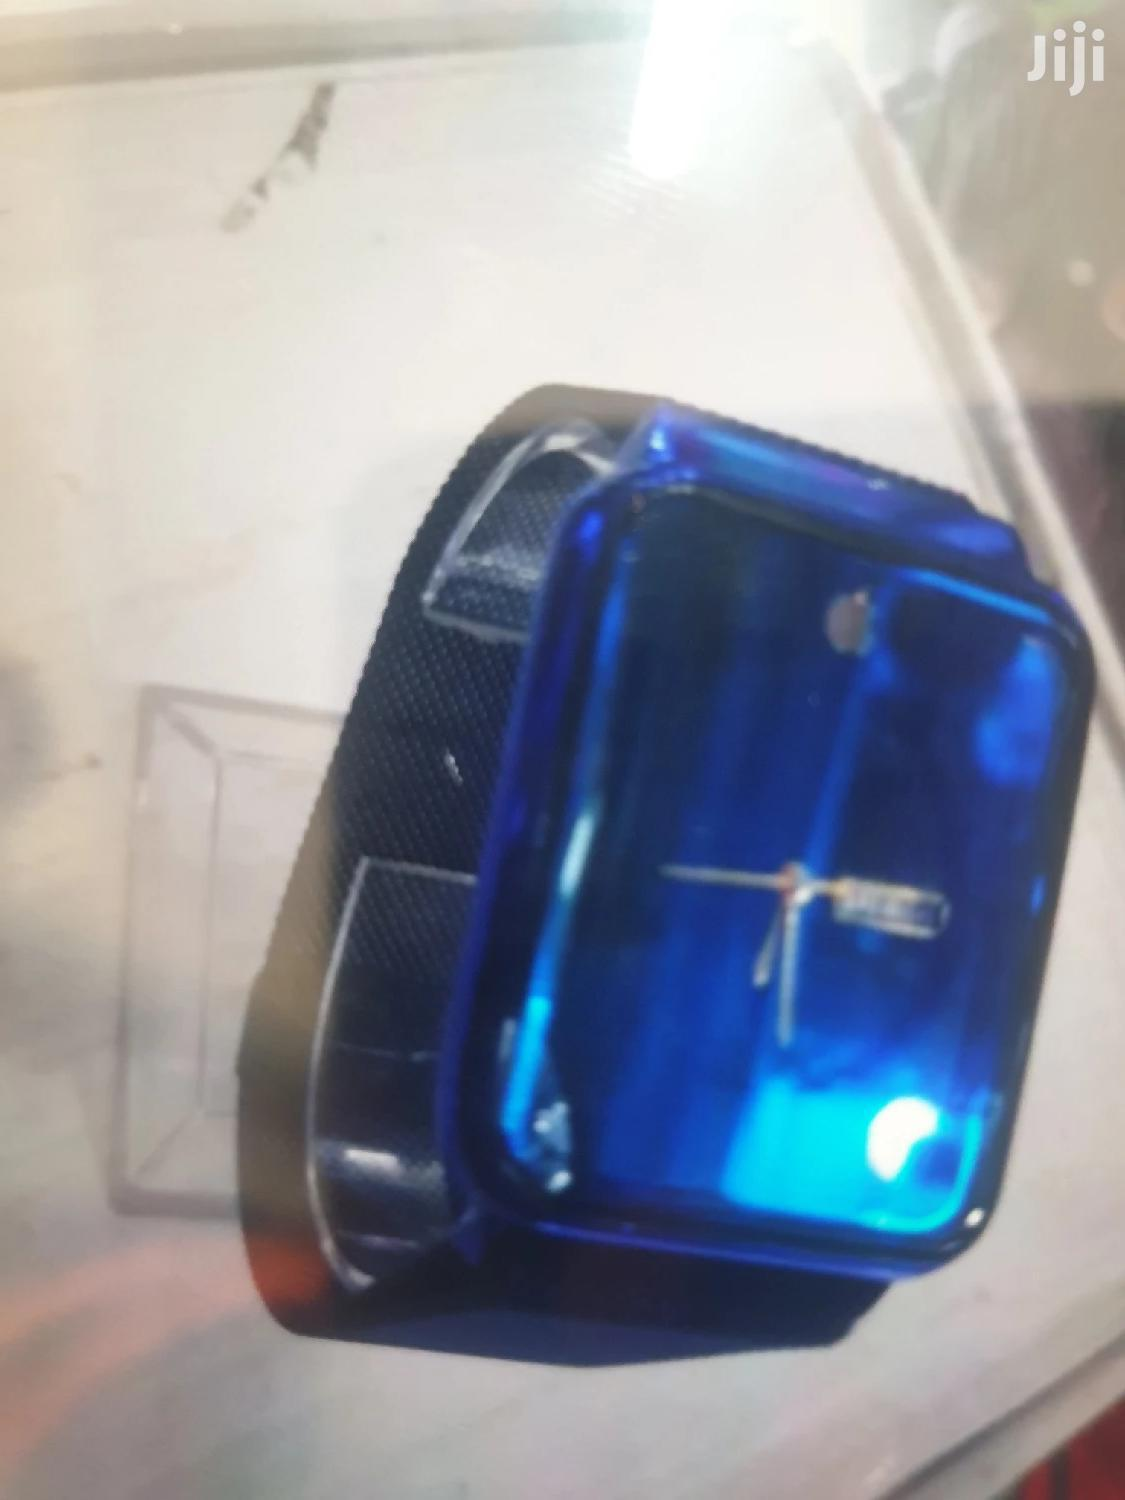 Unisex Apple Watch With Led Display